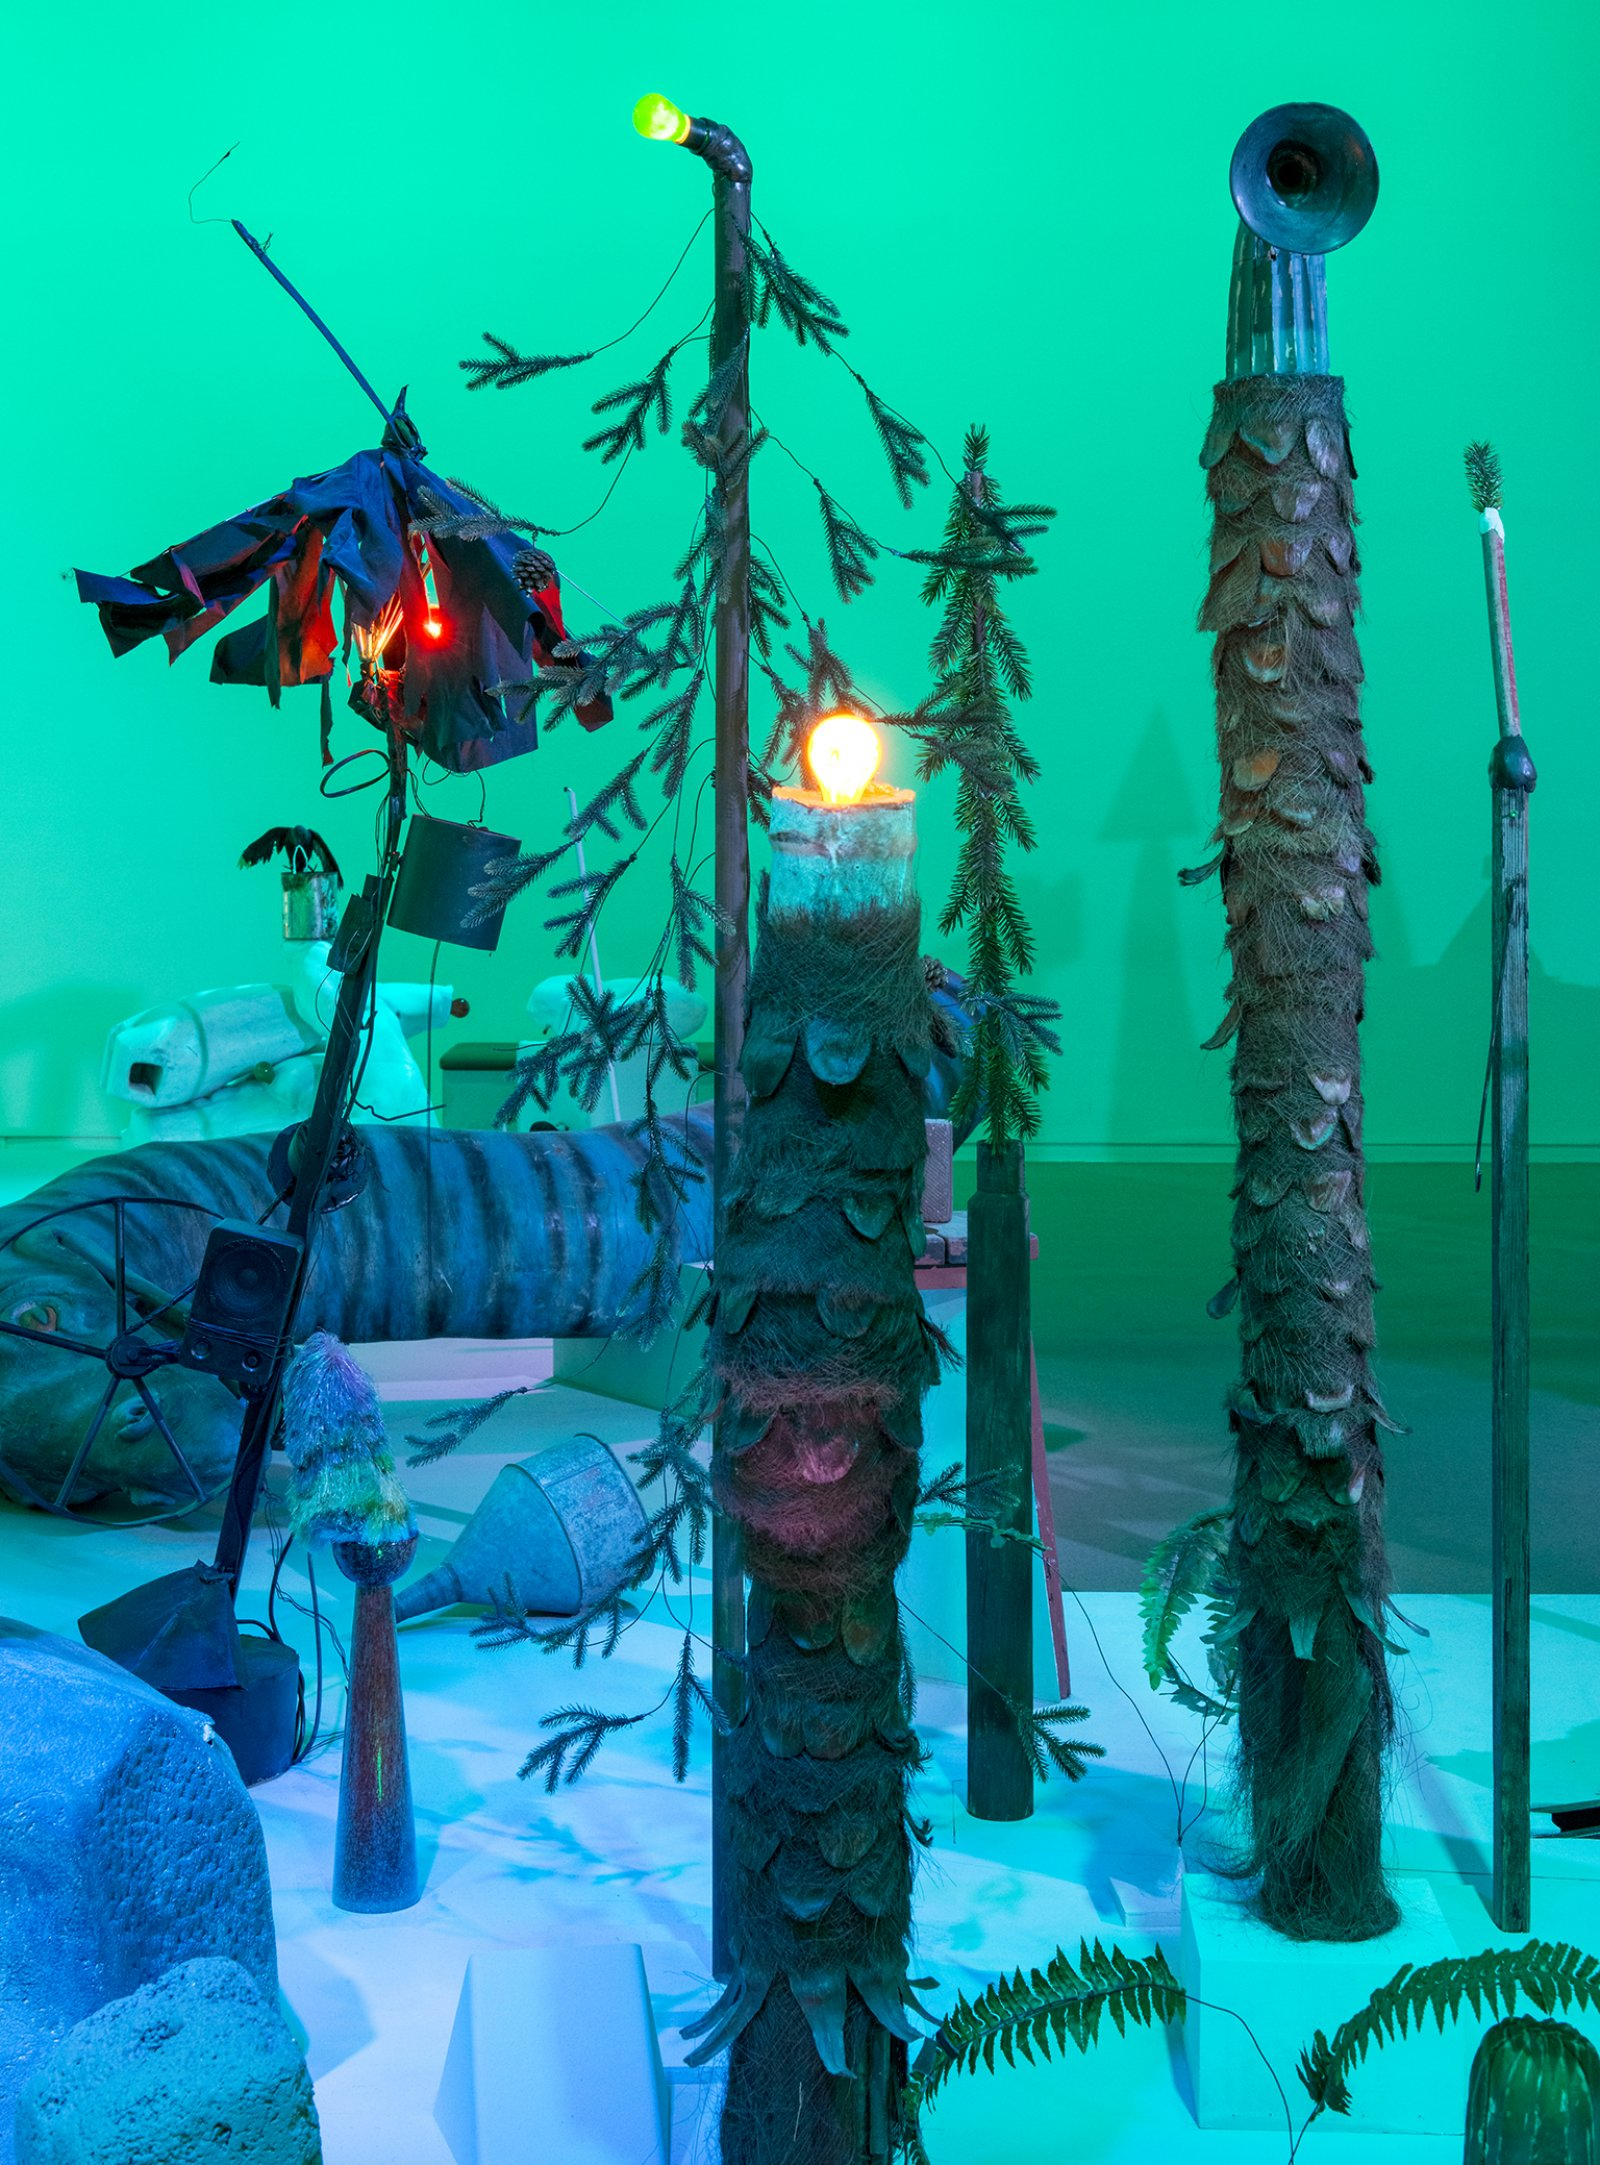 Geoffrey Farmer,Let's Make The Water Turn Black, 2013, a theatrical presentation of sculptural objects on a stage, with animatronics, audio and lighting directed by various computer programs, 289 x 360 x 90 in. (734 x 914 x 229 cm). Installation view,How Do I Fit This Ghost in My Mouth?, Vancouver Art Gallery, 2015